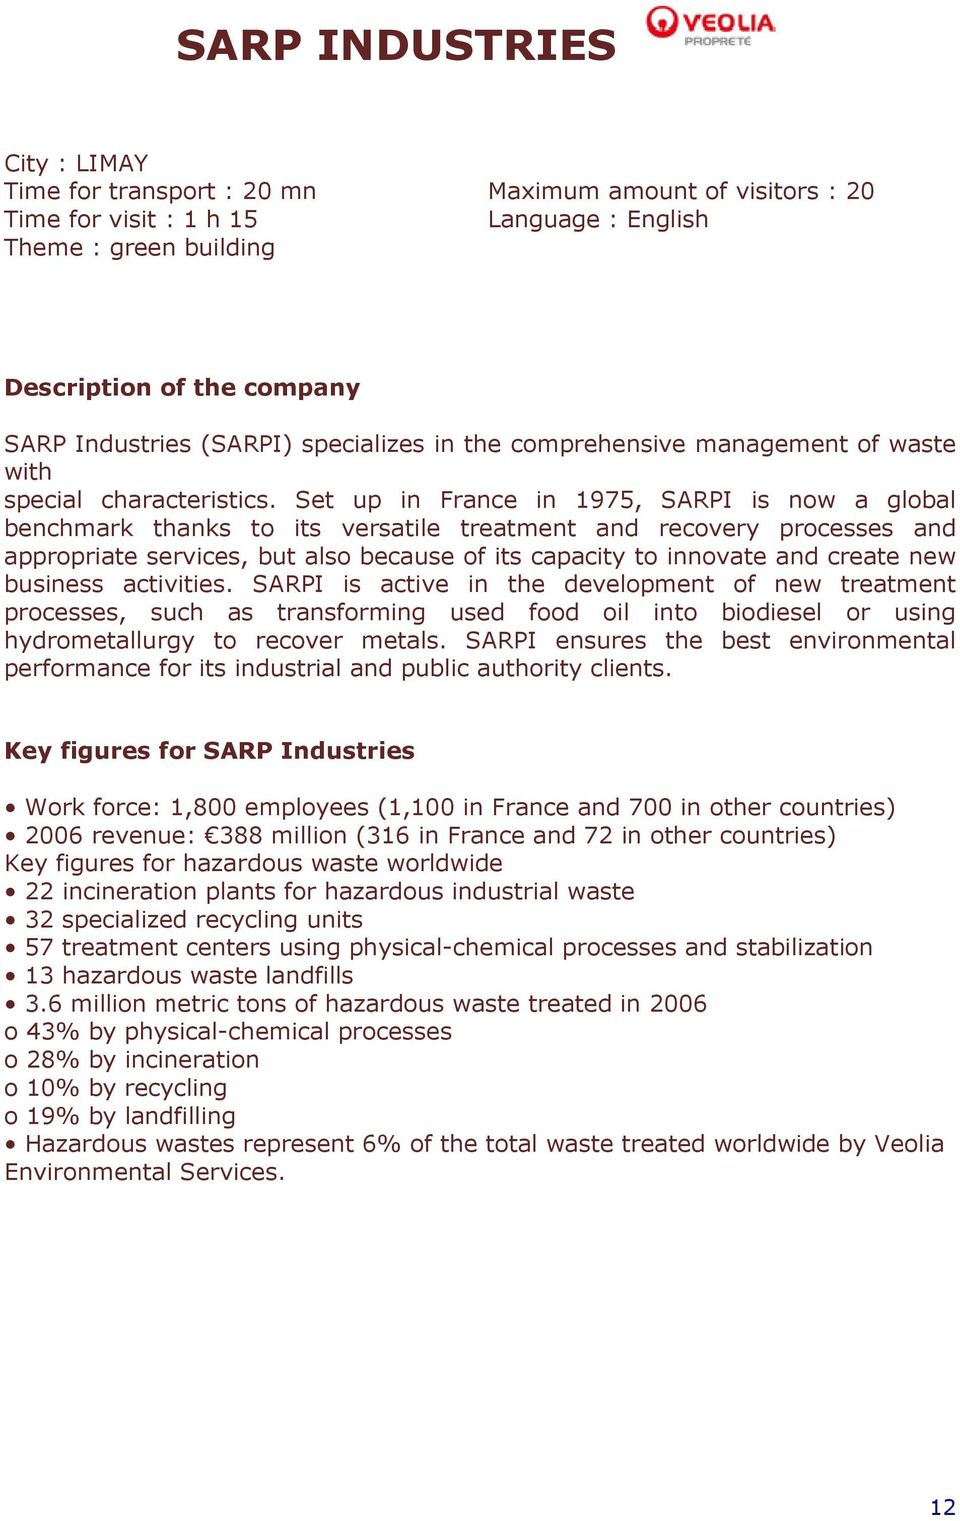 Set up in France in 1975, SARPI is now a global benchmark thanks to its versatile treatment and recovery processes and appropriate services, but also because of its capacity to innovate and create